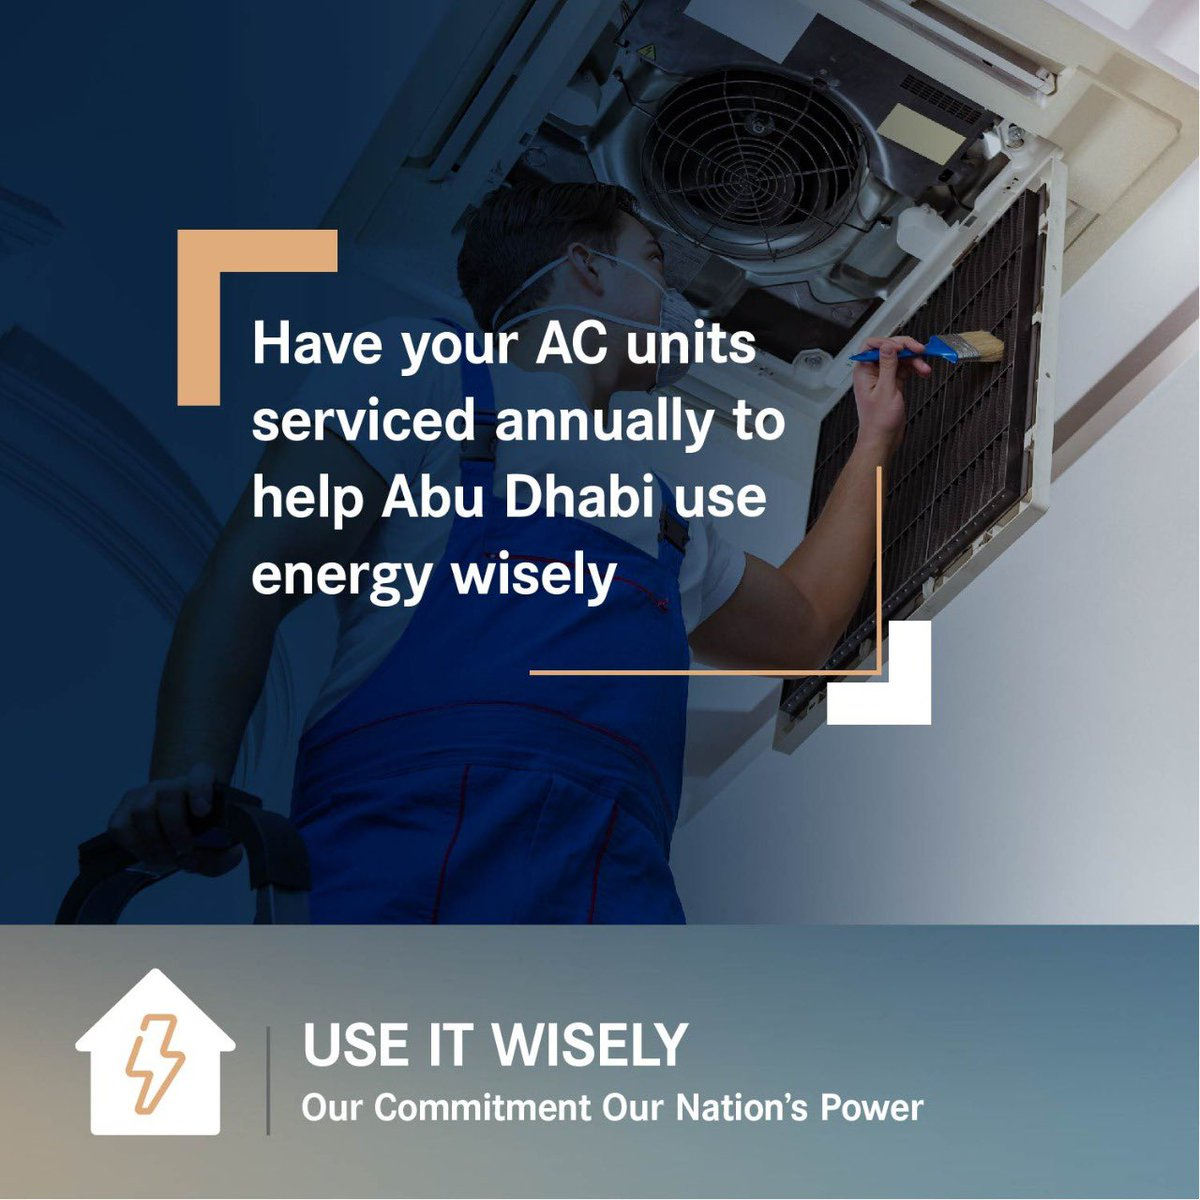 "Have your AC units serviced annually to help Abu Dhabi ""use energy wisely. #UseItWisely  #OurCommitment #OurNationsPower  #YouAreResponsible #DoE #UAE #EnergyConservation #EnergySustainability #EnergySaving #Conservation #AbuDhabi #Energy #TowardsaNewEnergyEra https://t.co/agngp5qGRs"